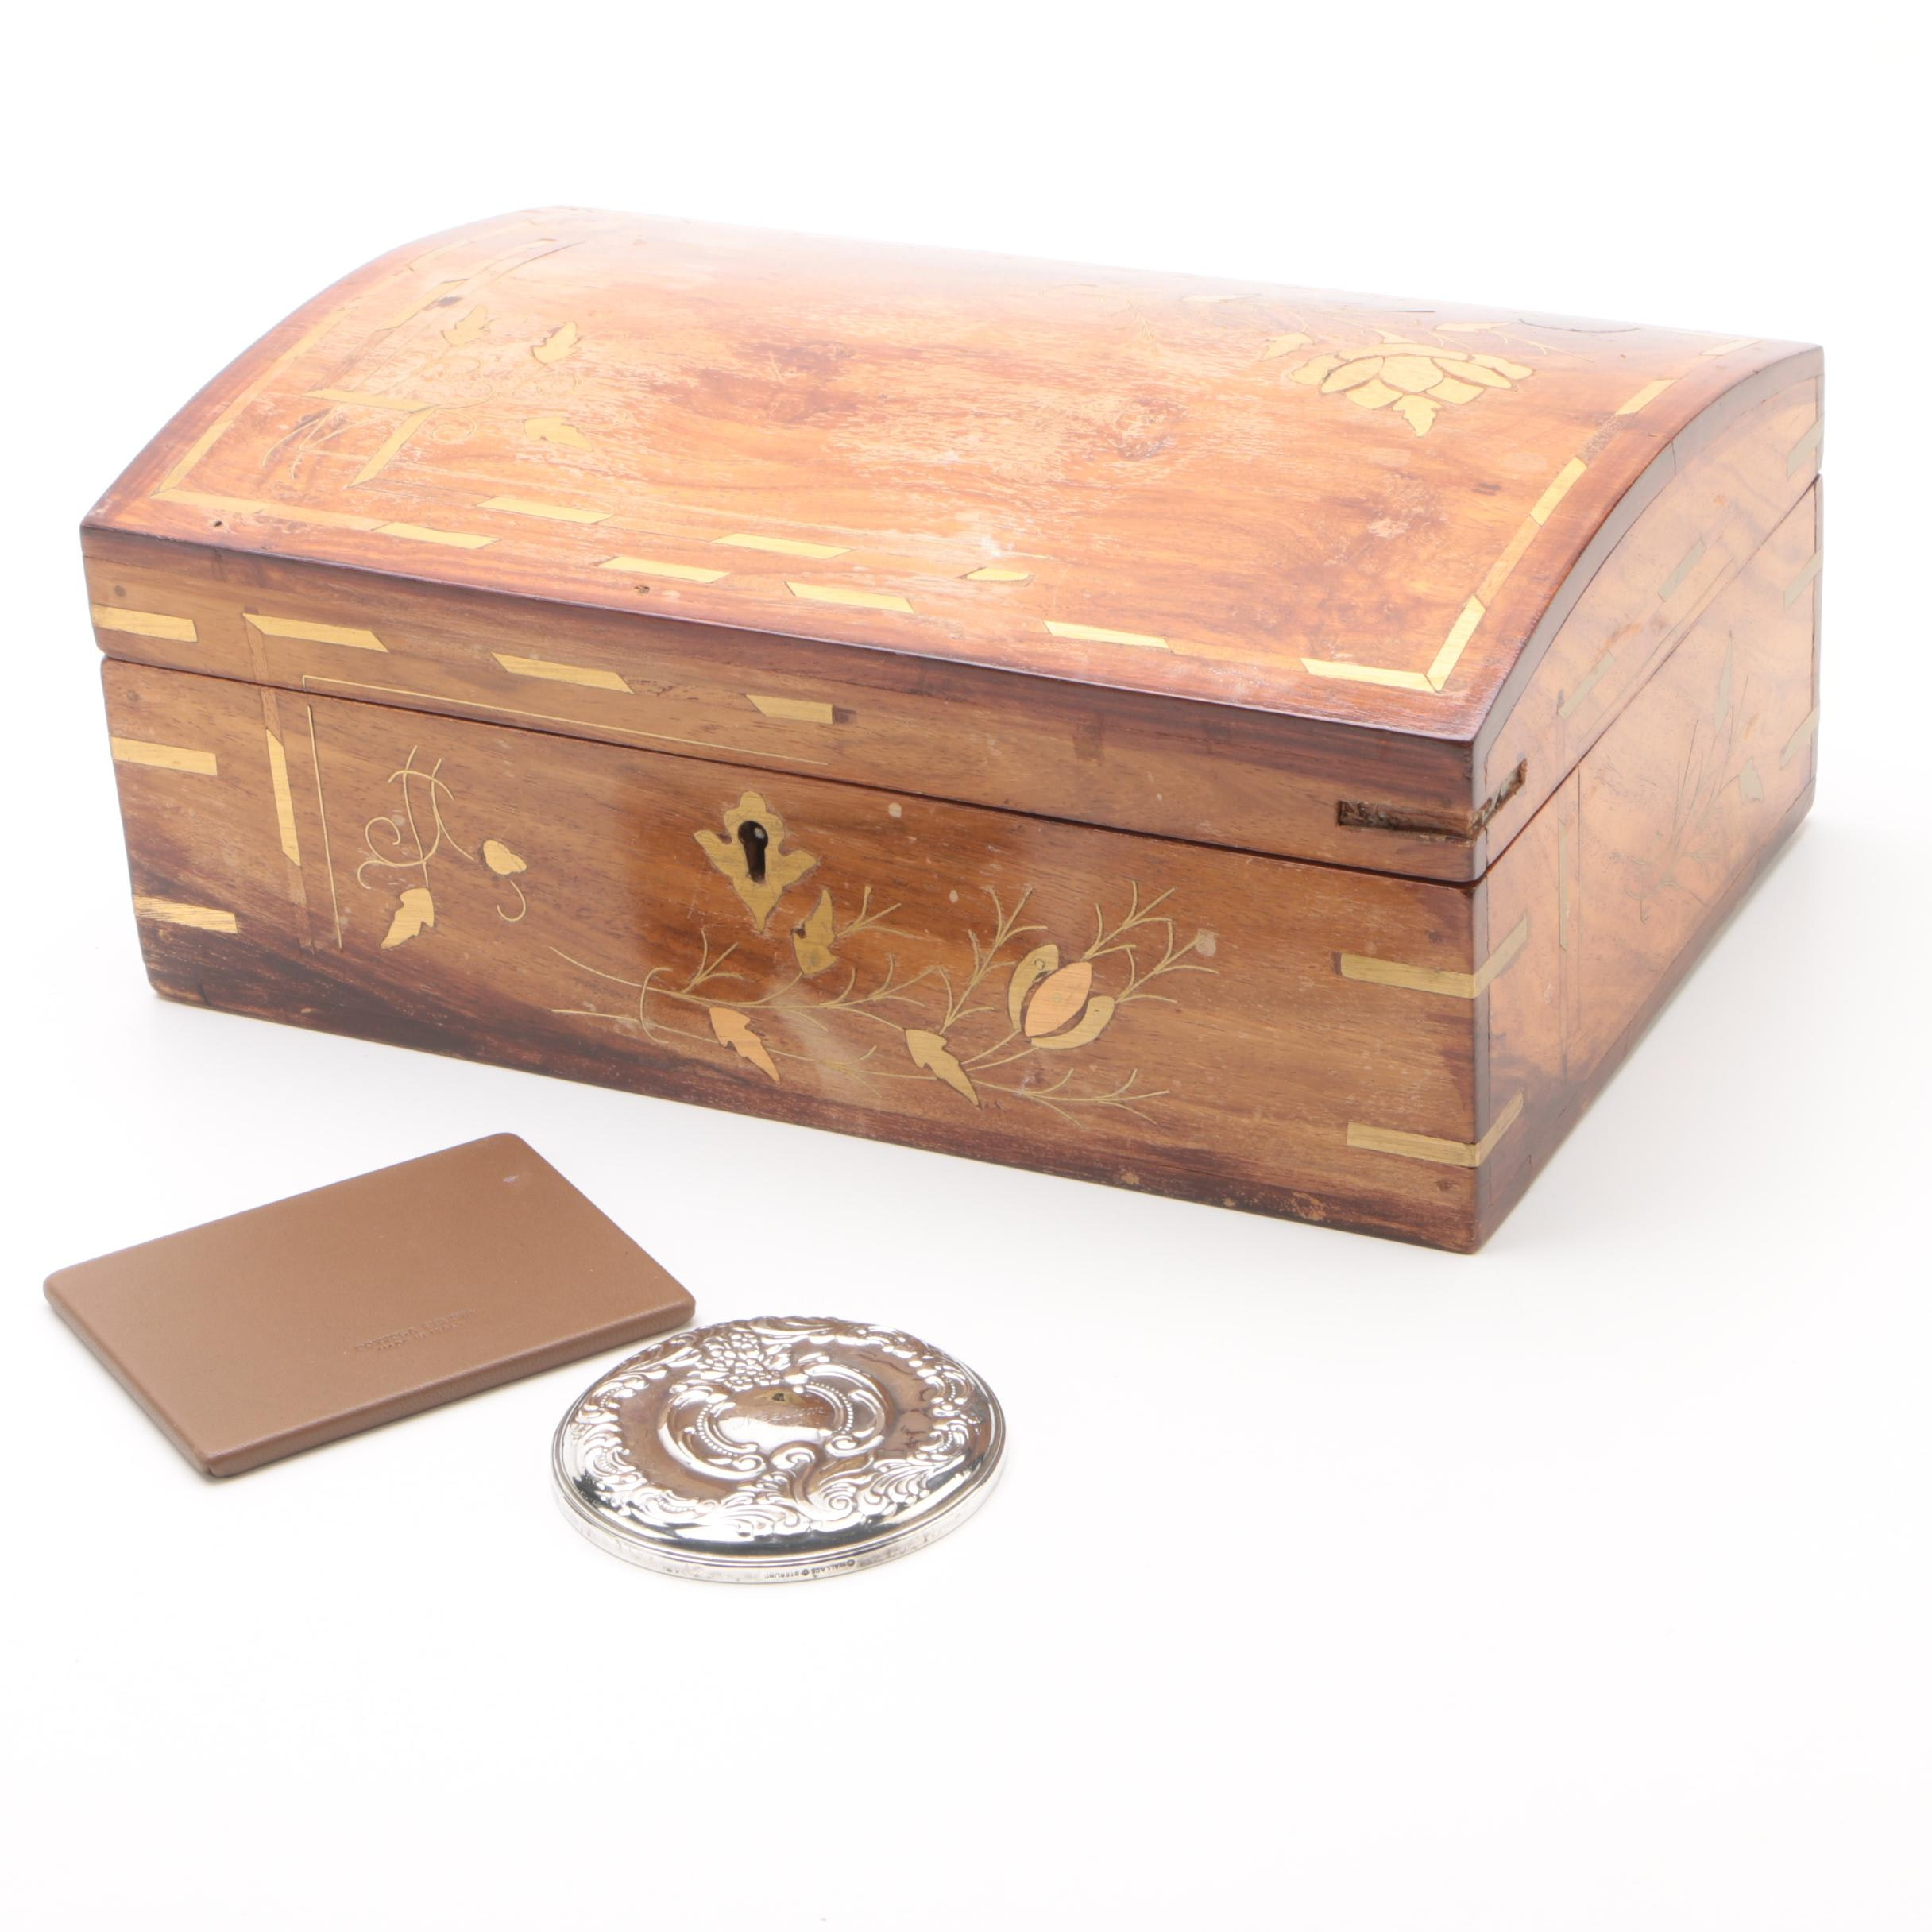 Wooden Jewelry Box with Wallace Silversmiths and Bottega Veneta Compact Mirrors